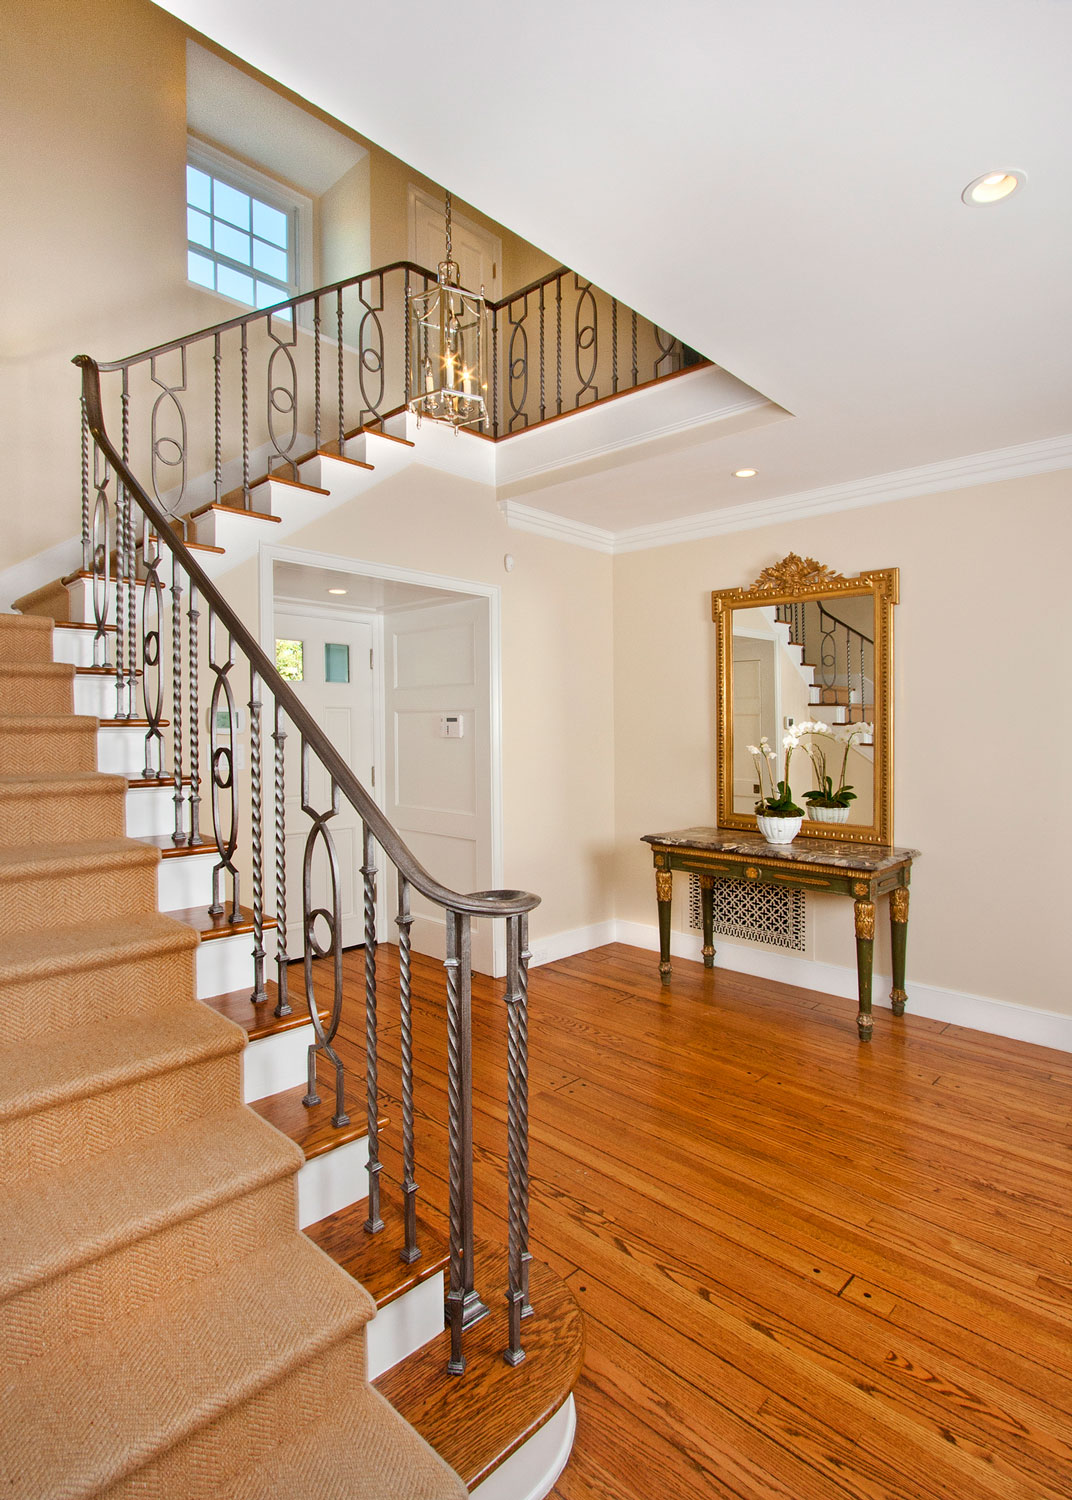 09-front-entry-staircase-iron-railing-gary-drake-general-contractor.jpg